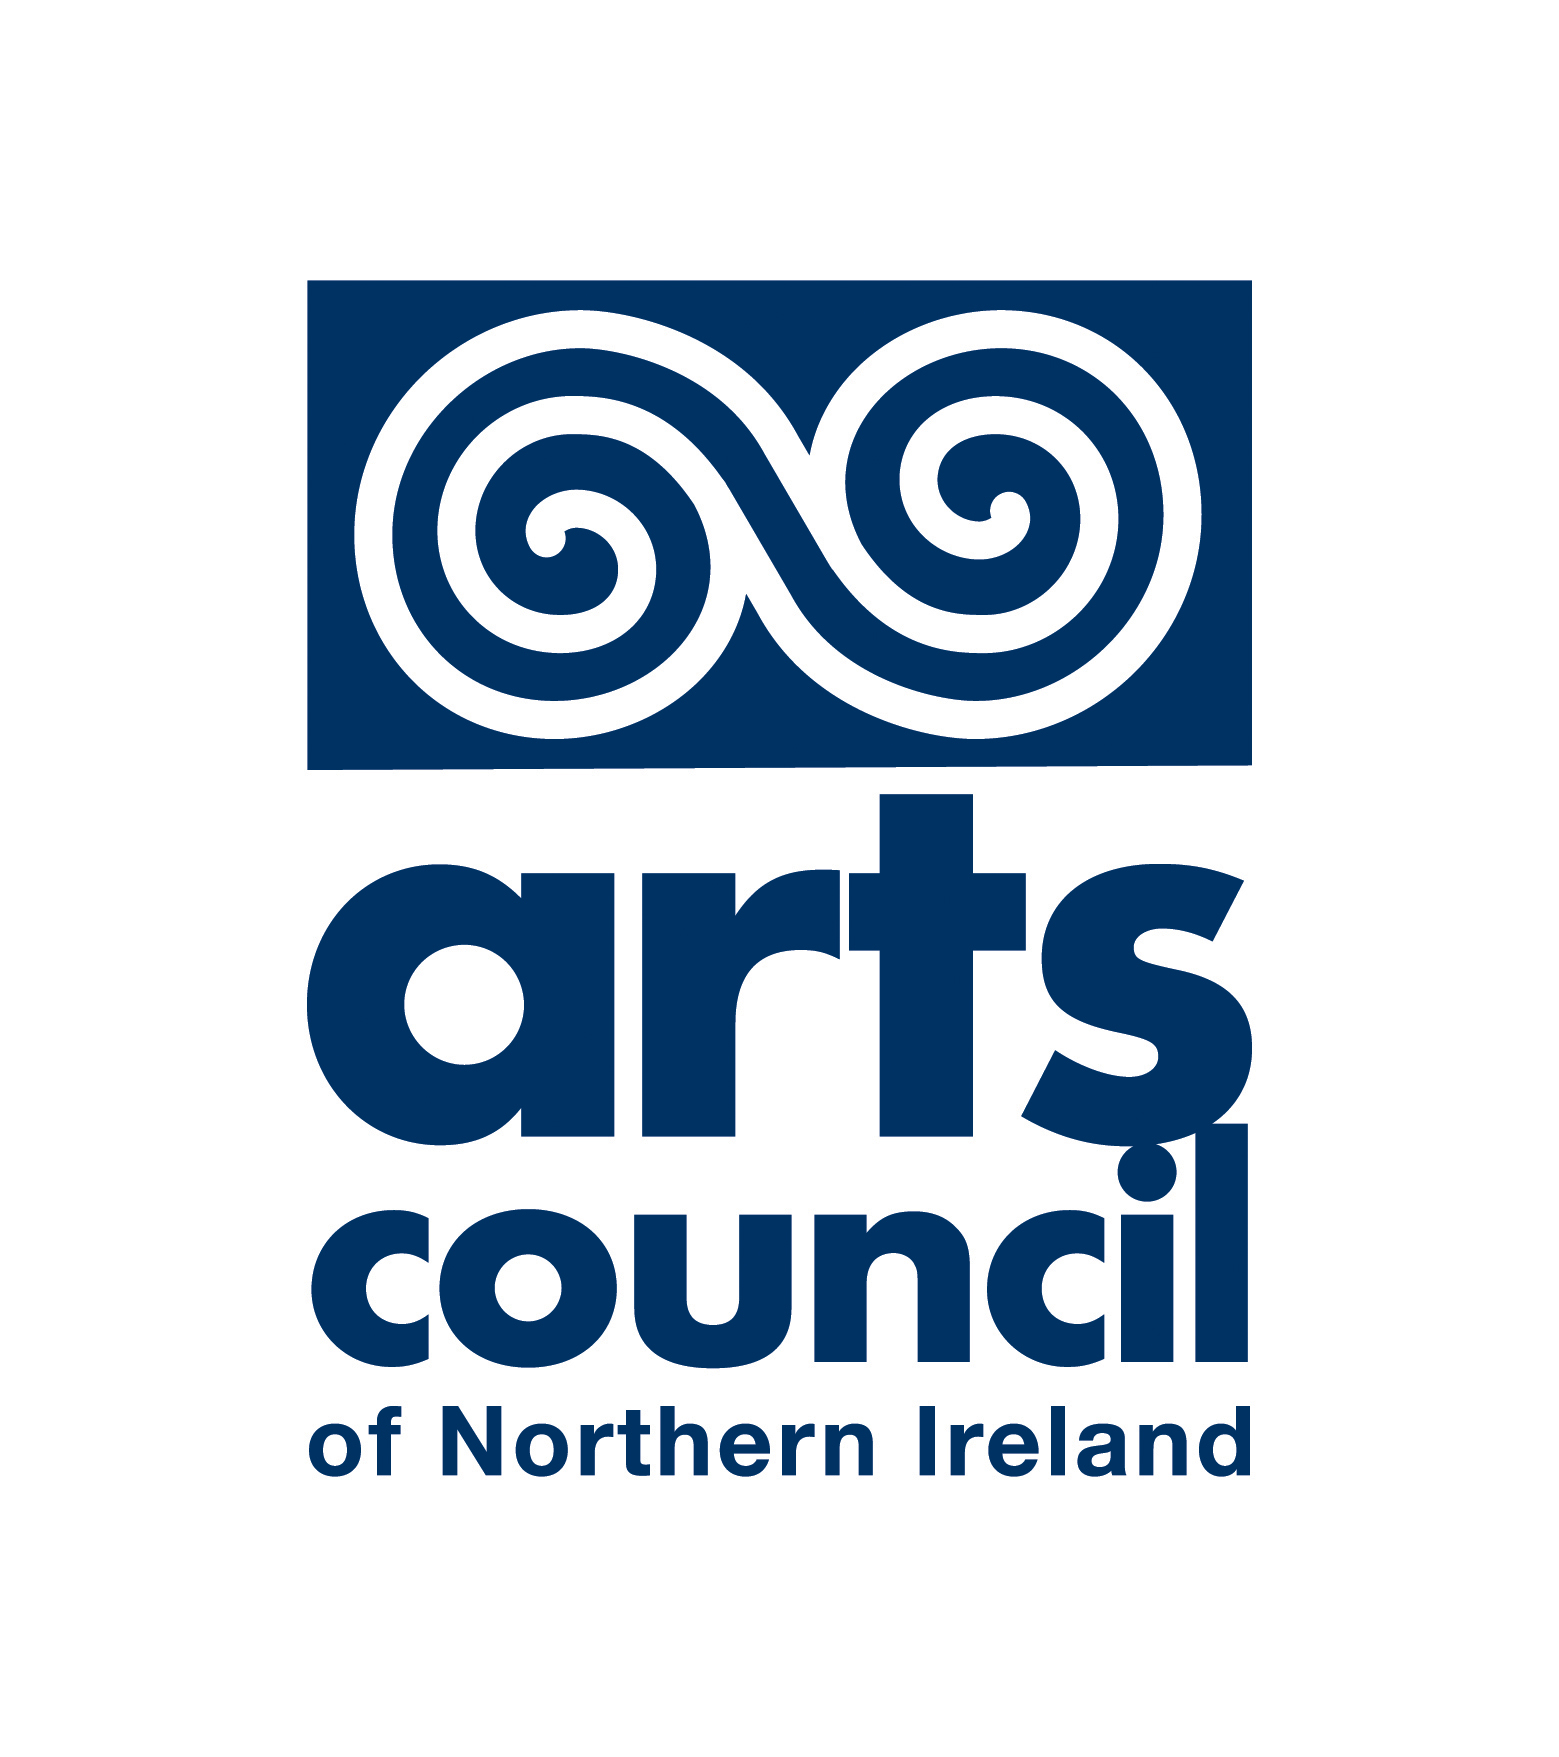 Call for arts support in Northern Ireland